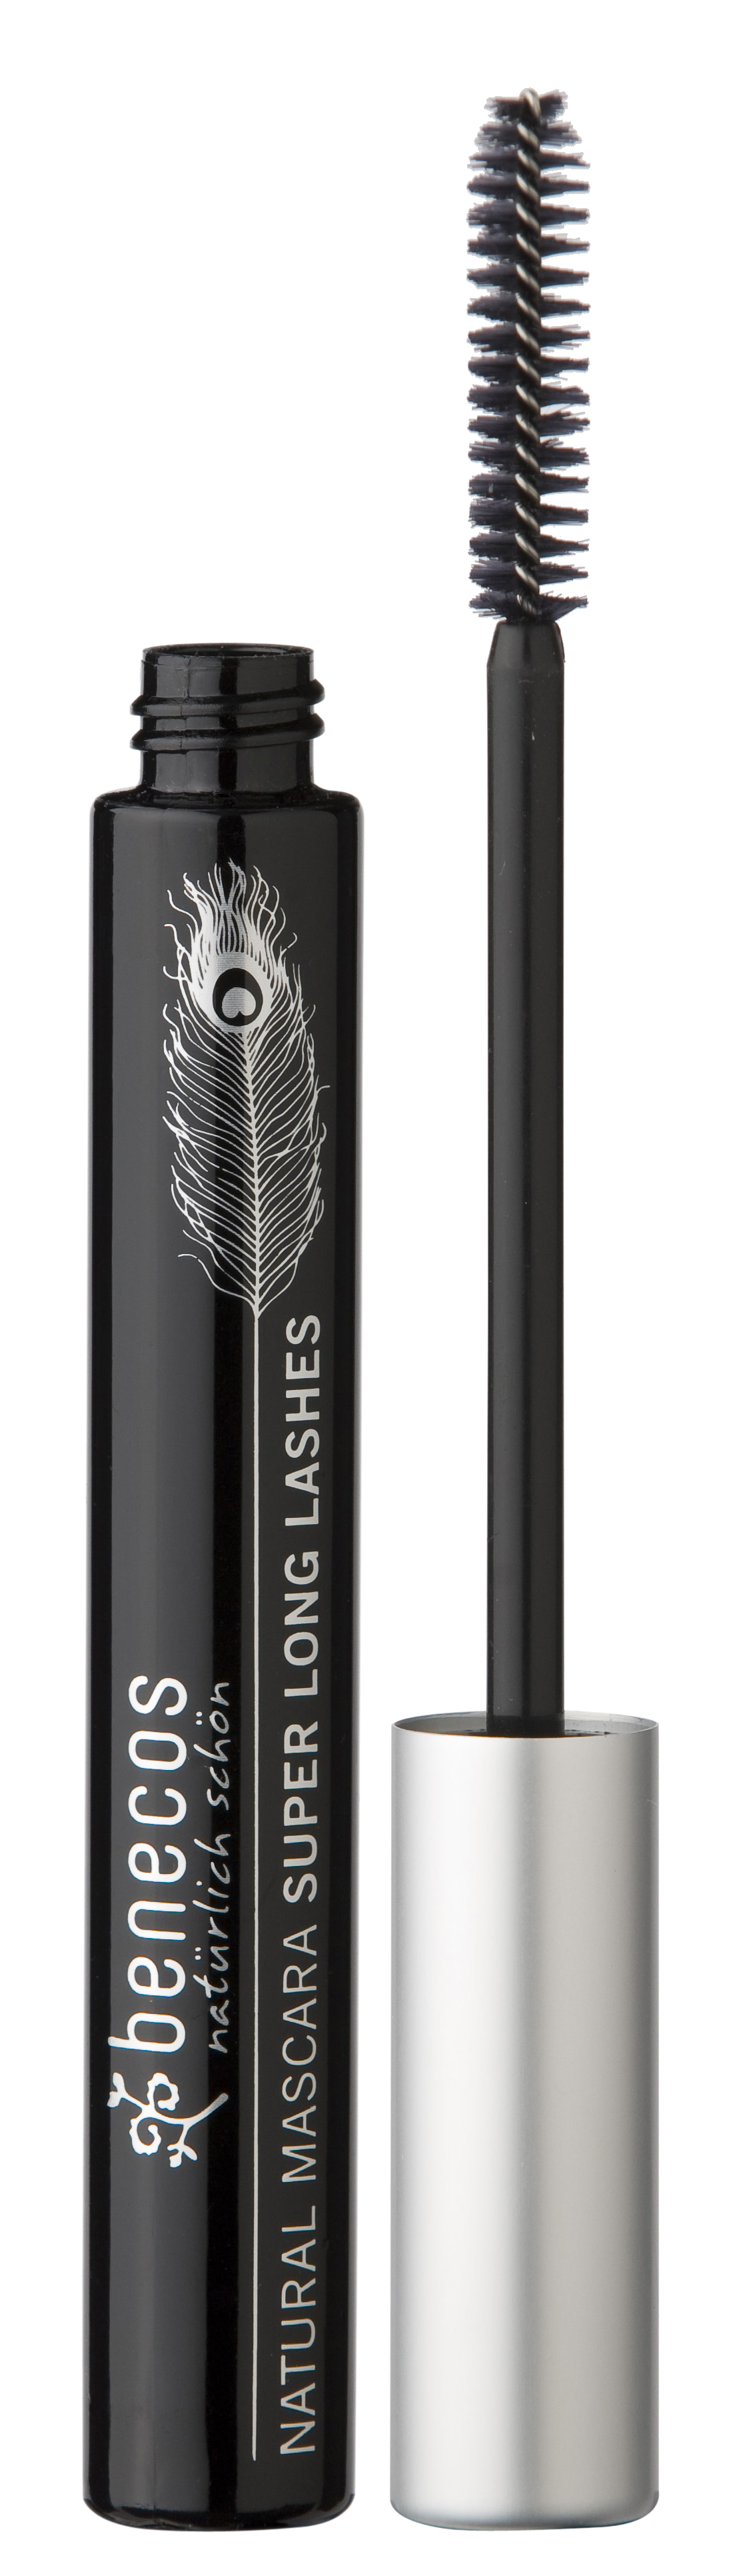 benecos Rimel SUPERLONG LASHES - natural mascara carbon black